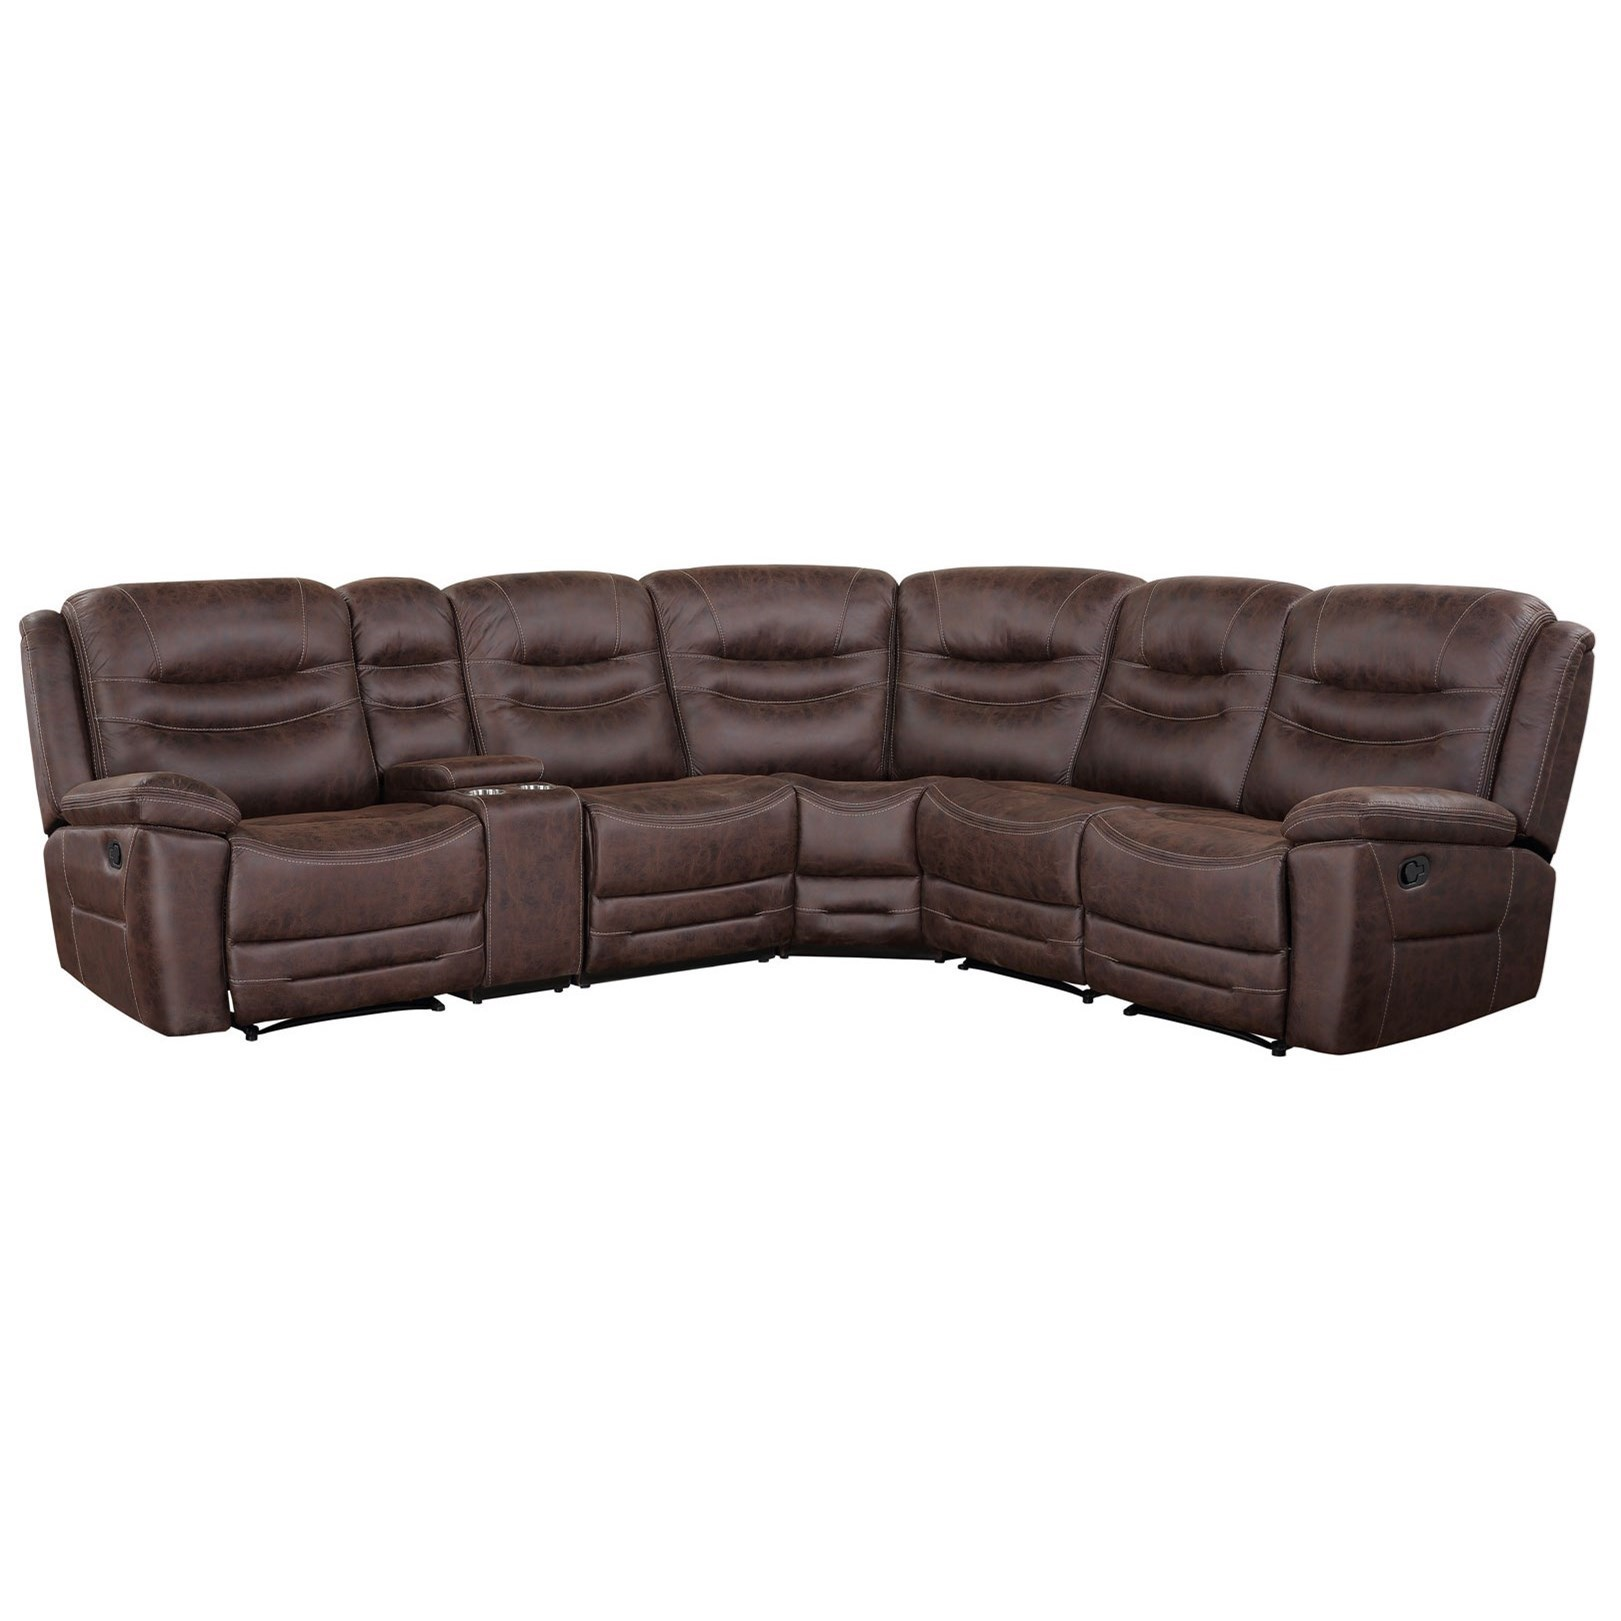 Casual 6-Piece Manual Reclining Sectional with Cup Holders